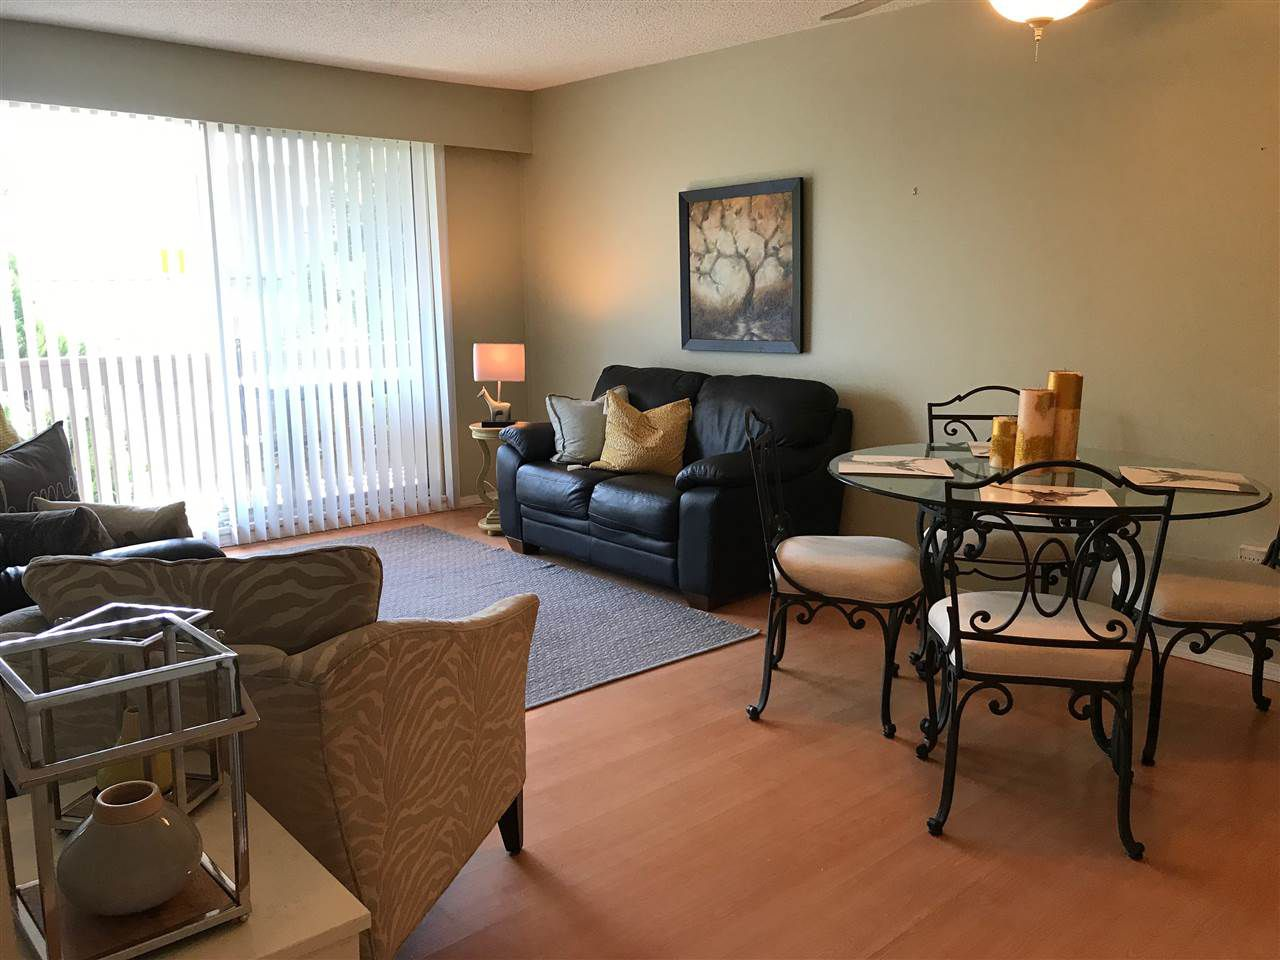 """Main Photo: 214 910 FIFTH Avenue in New Westminster: Uptown NW Condo for sale in """"GROSVENOR COURT"""" : MLS®# R2182275"""